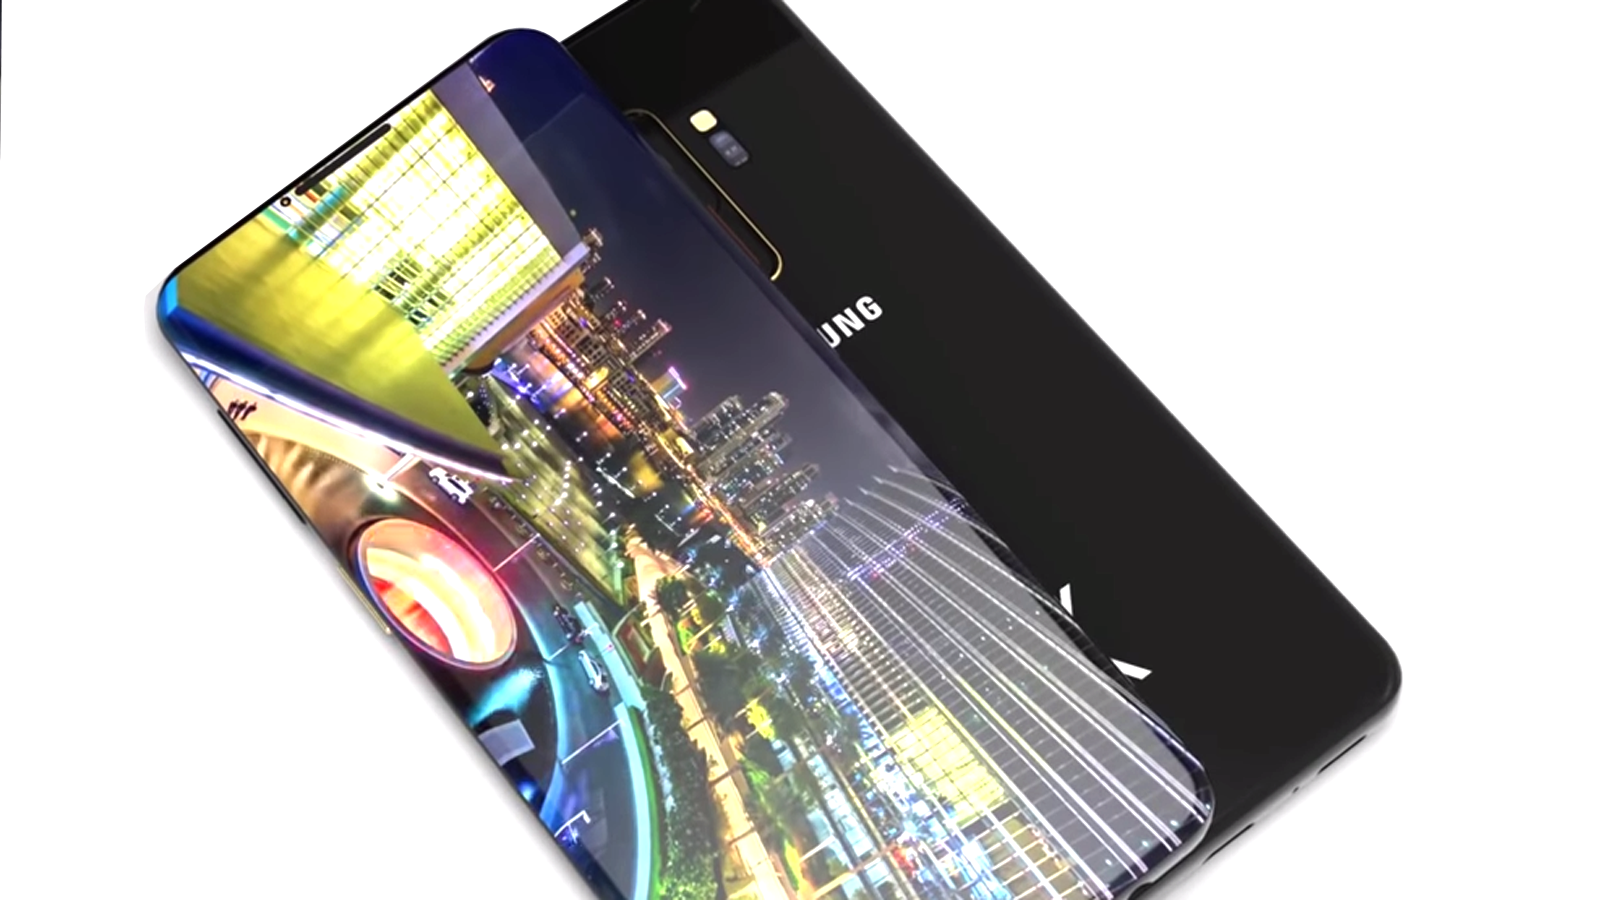 Samsung Galaxy S10 3 Key Features That Will Outclass The Iphone Xs